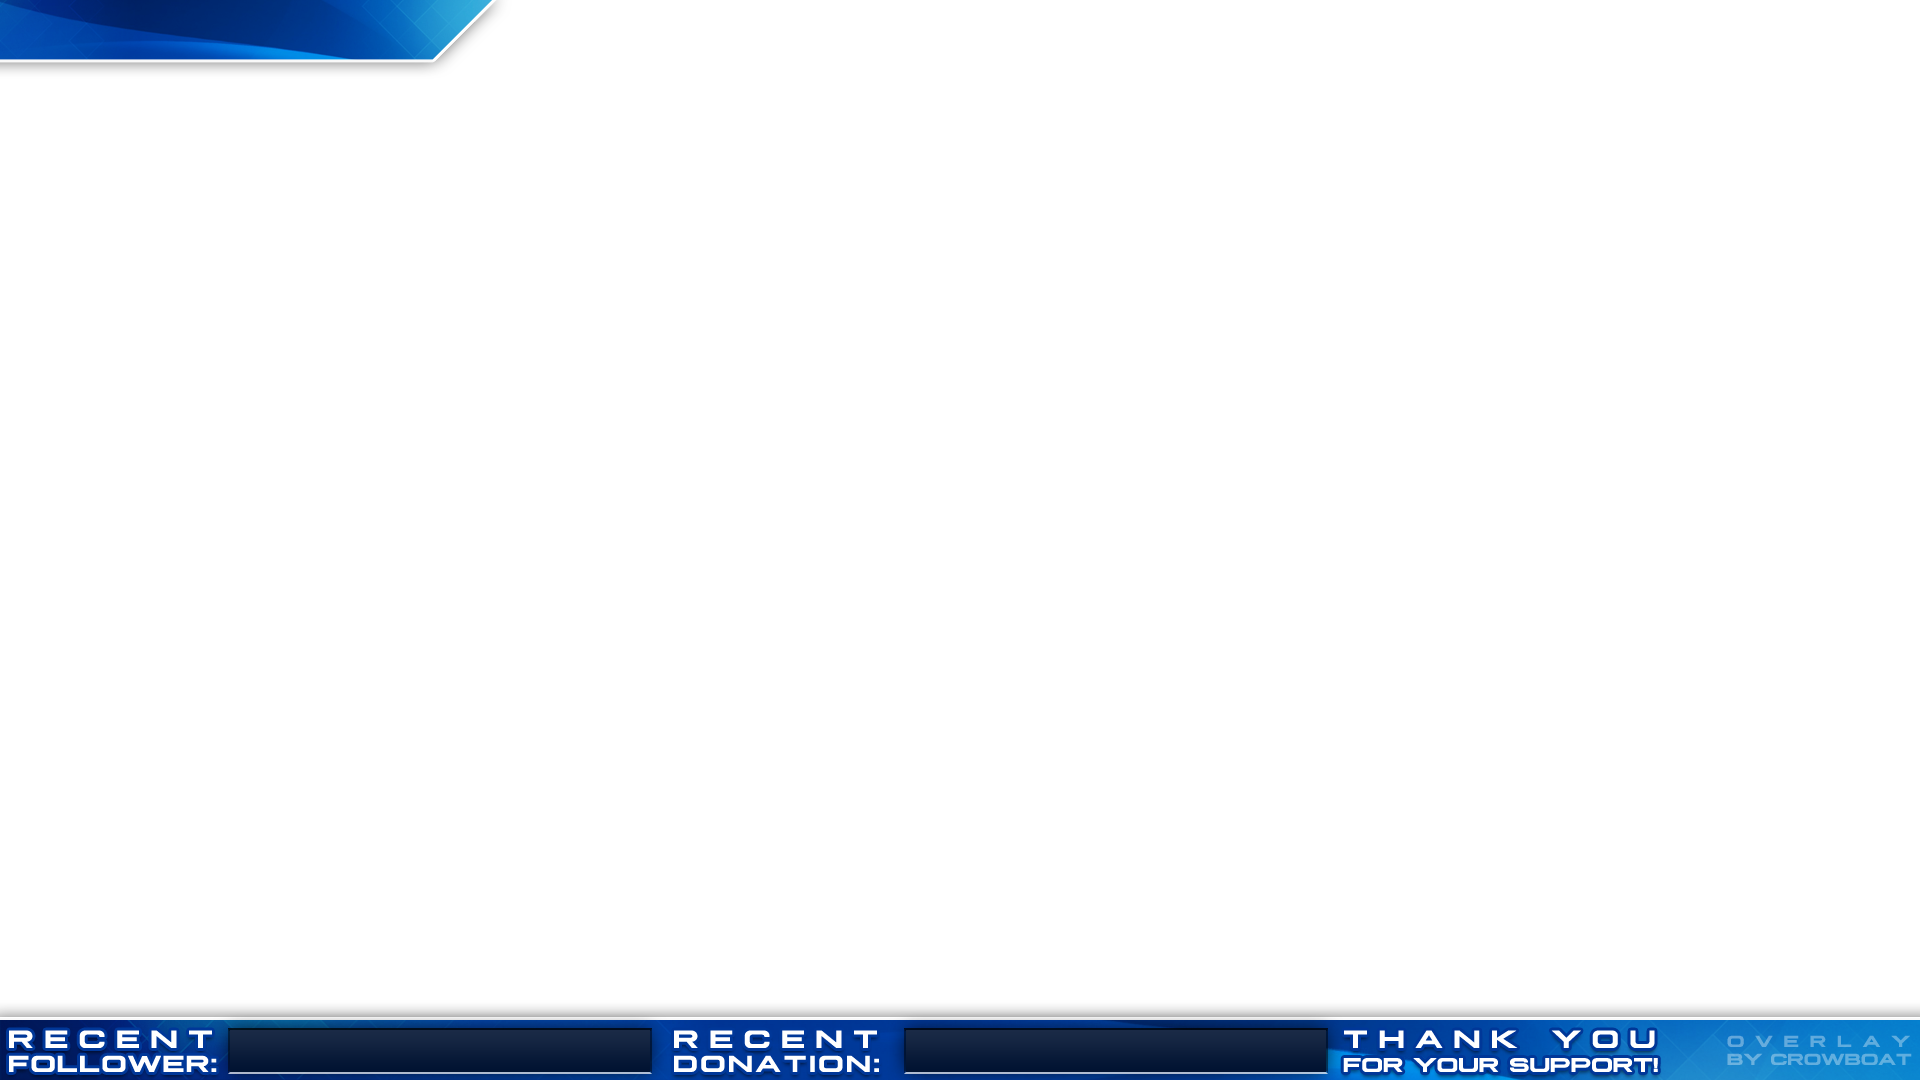 Free twitch overlays png. Overlay minimal design blue